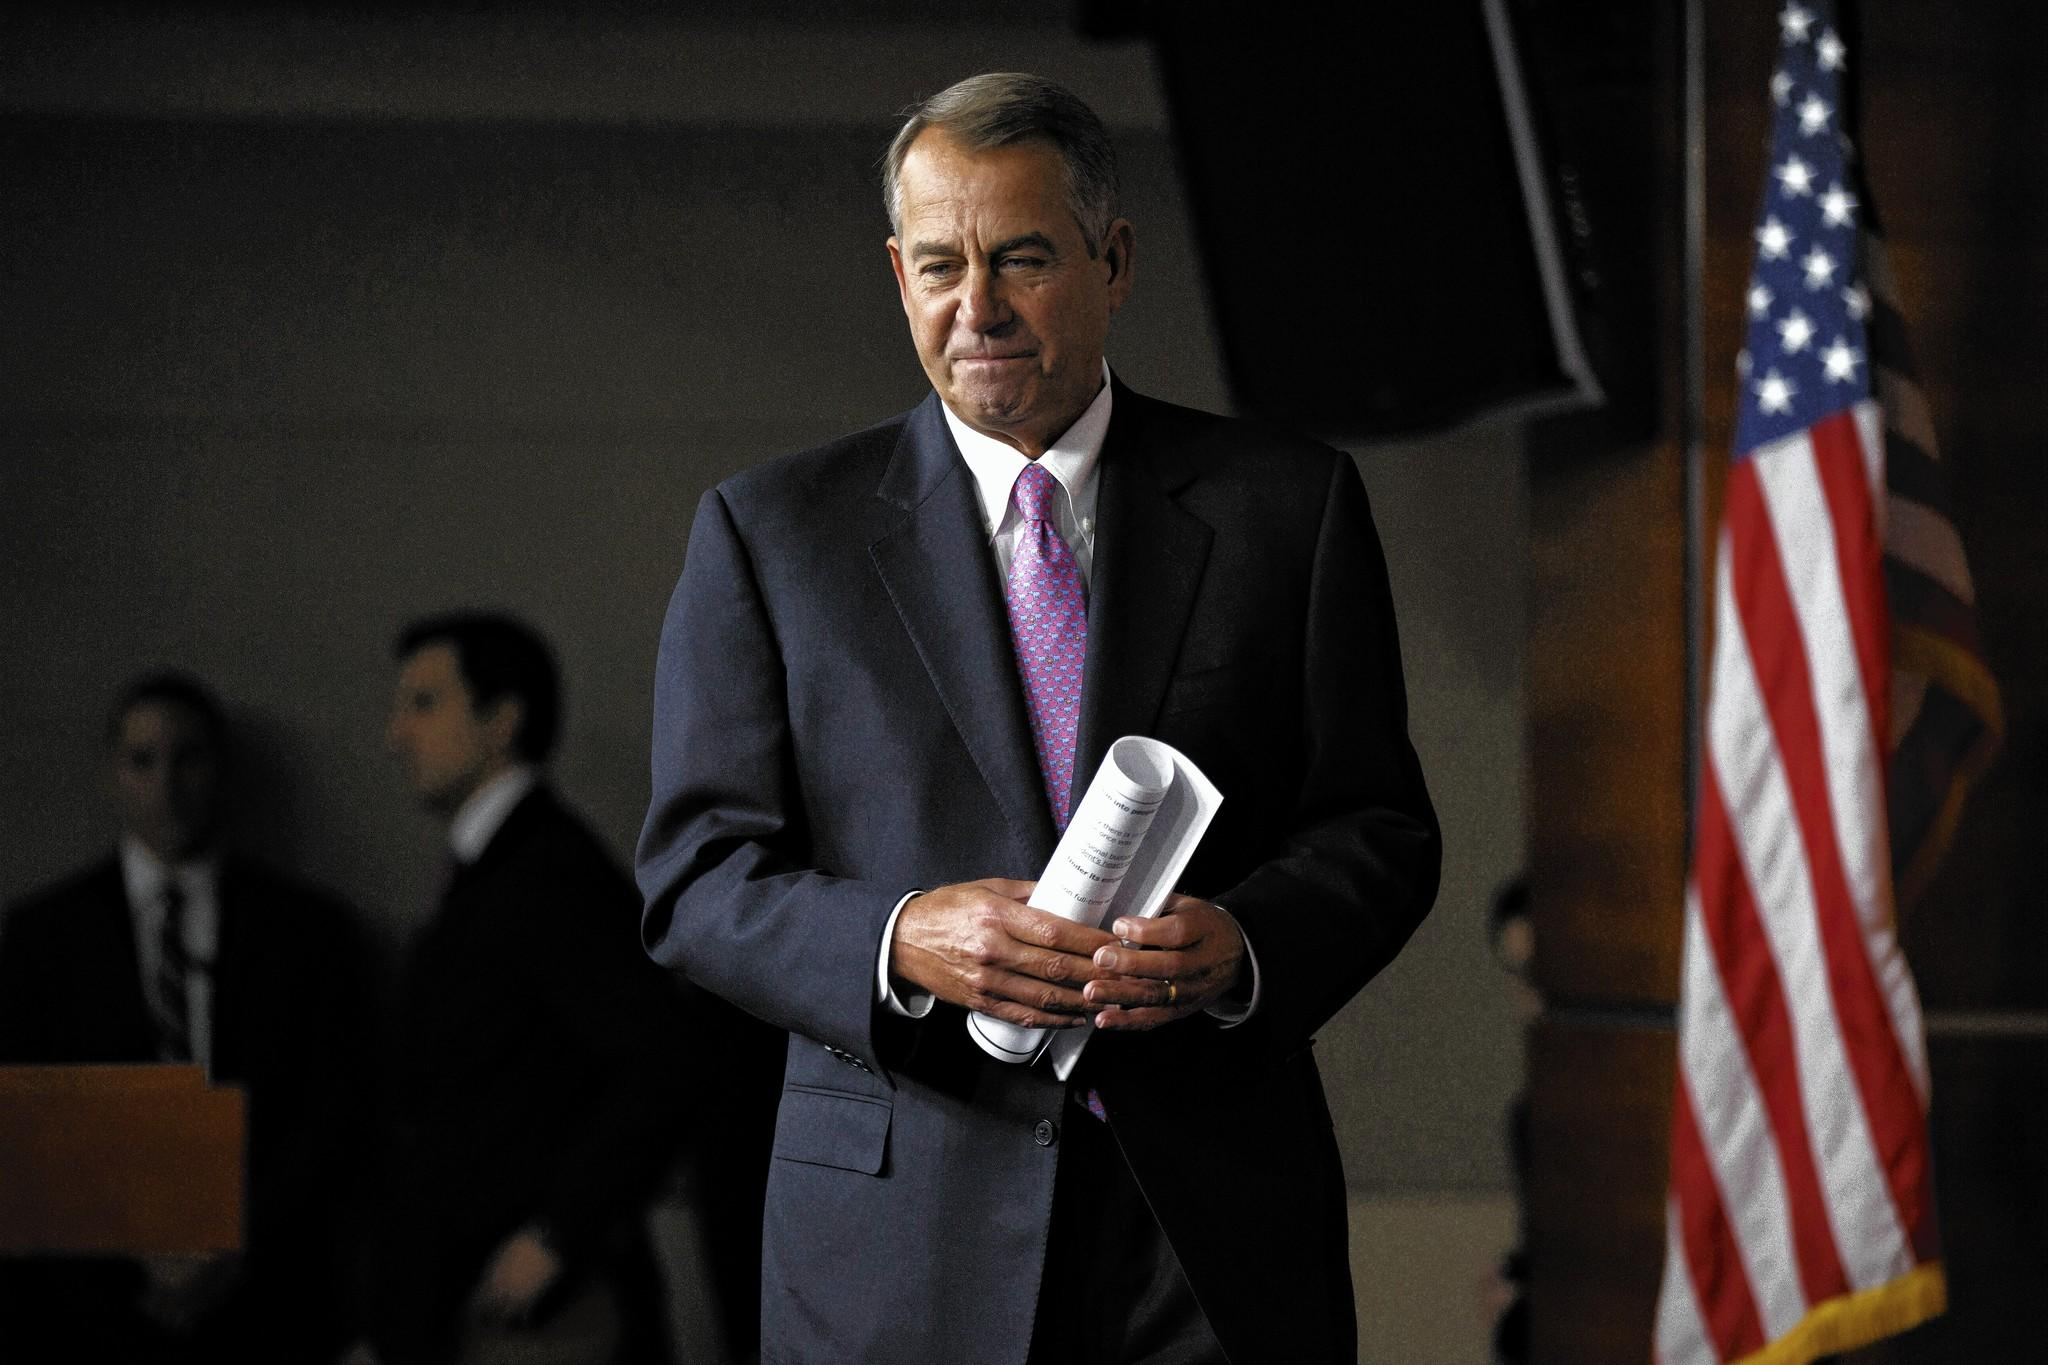 House Speaker John A. Boehner (R-Ohio) has faced considerable opposition from conservatives in his party over proposed immigration measures.